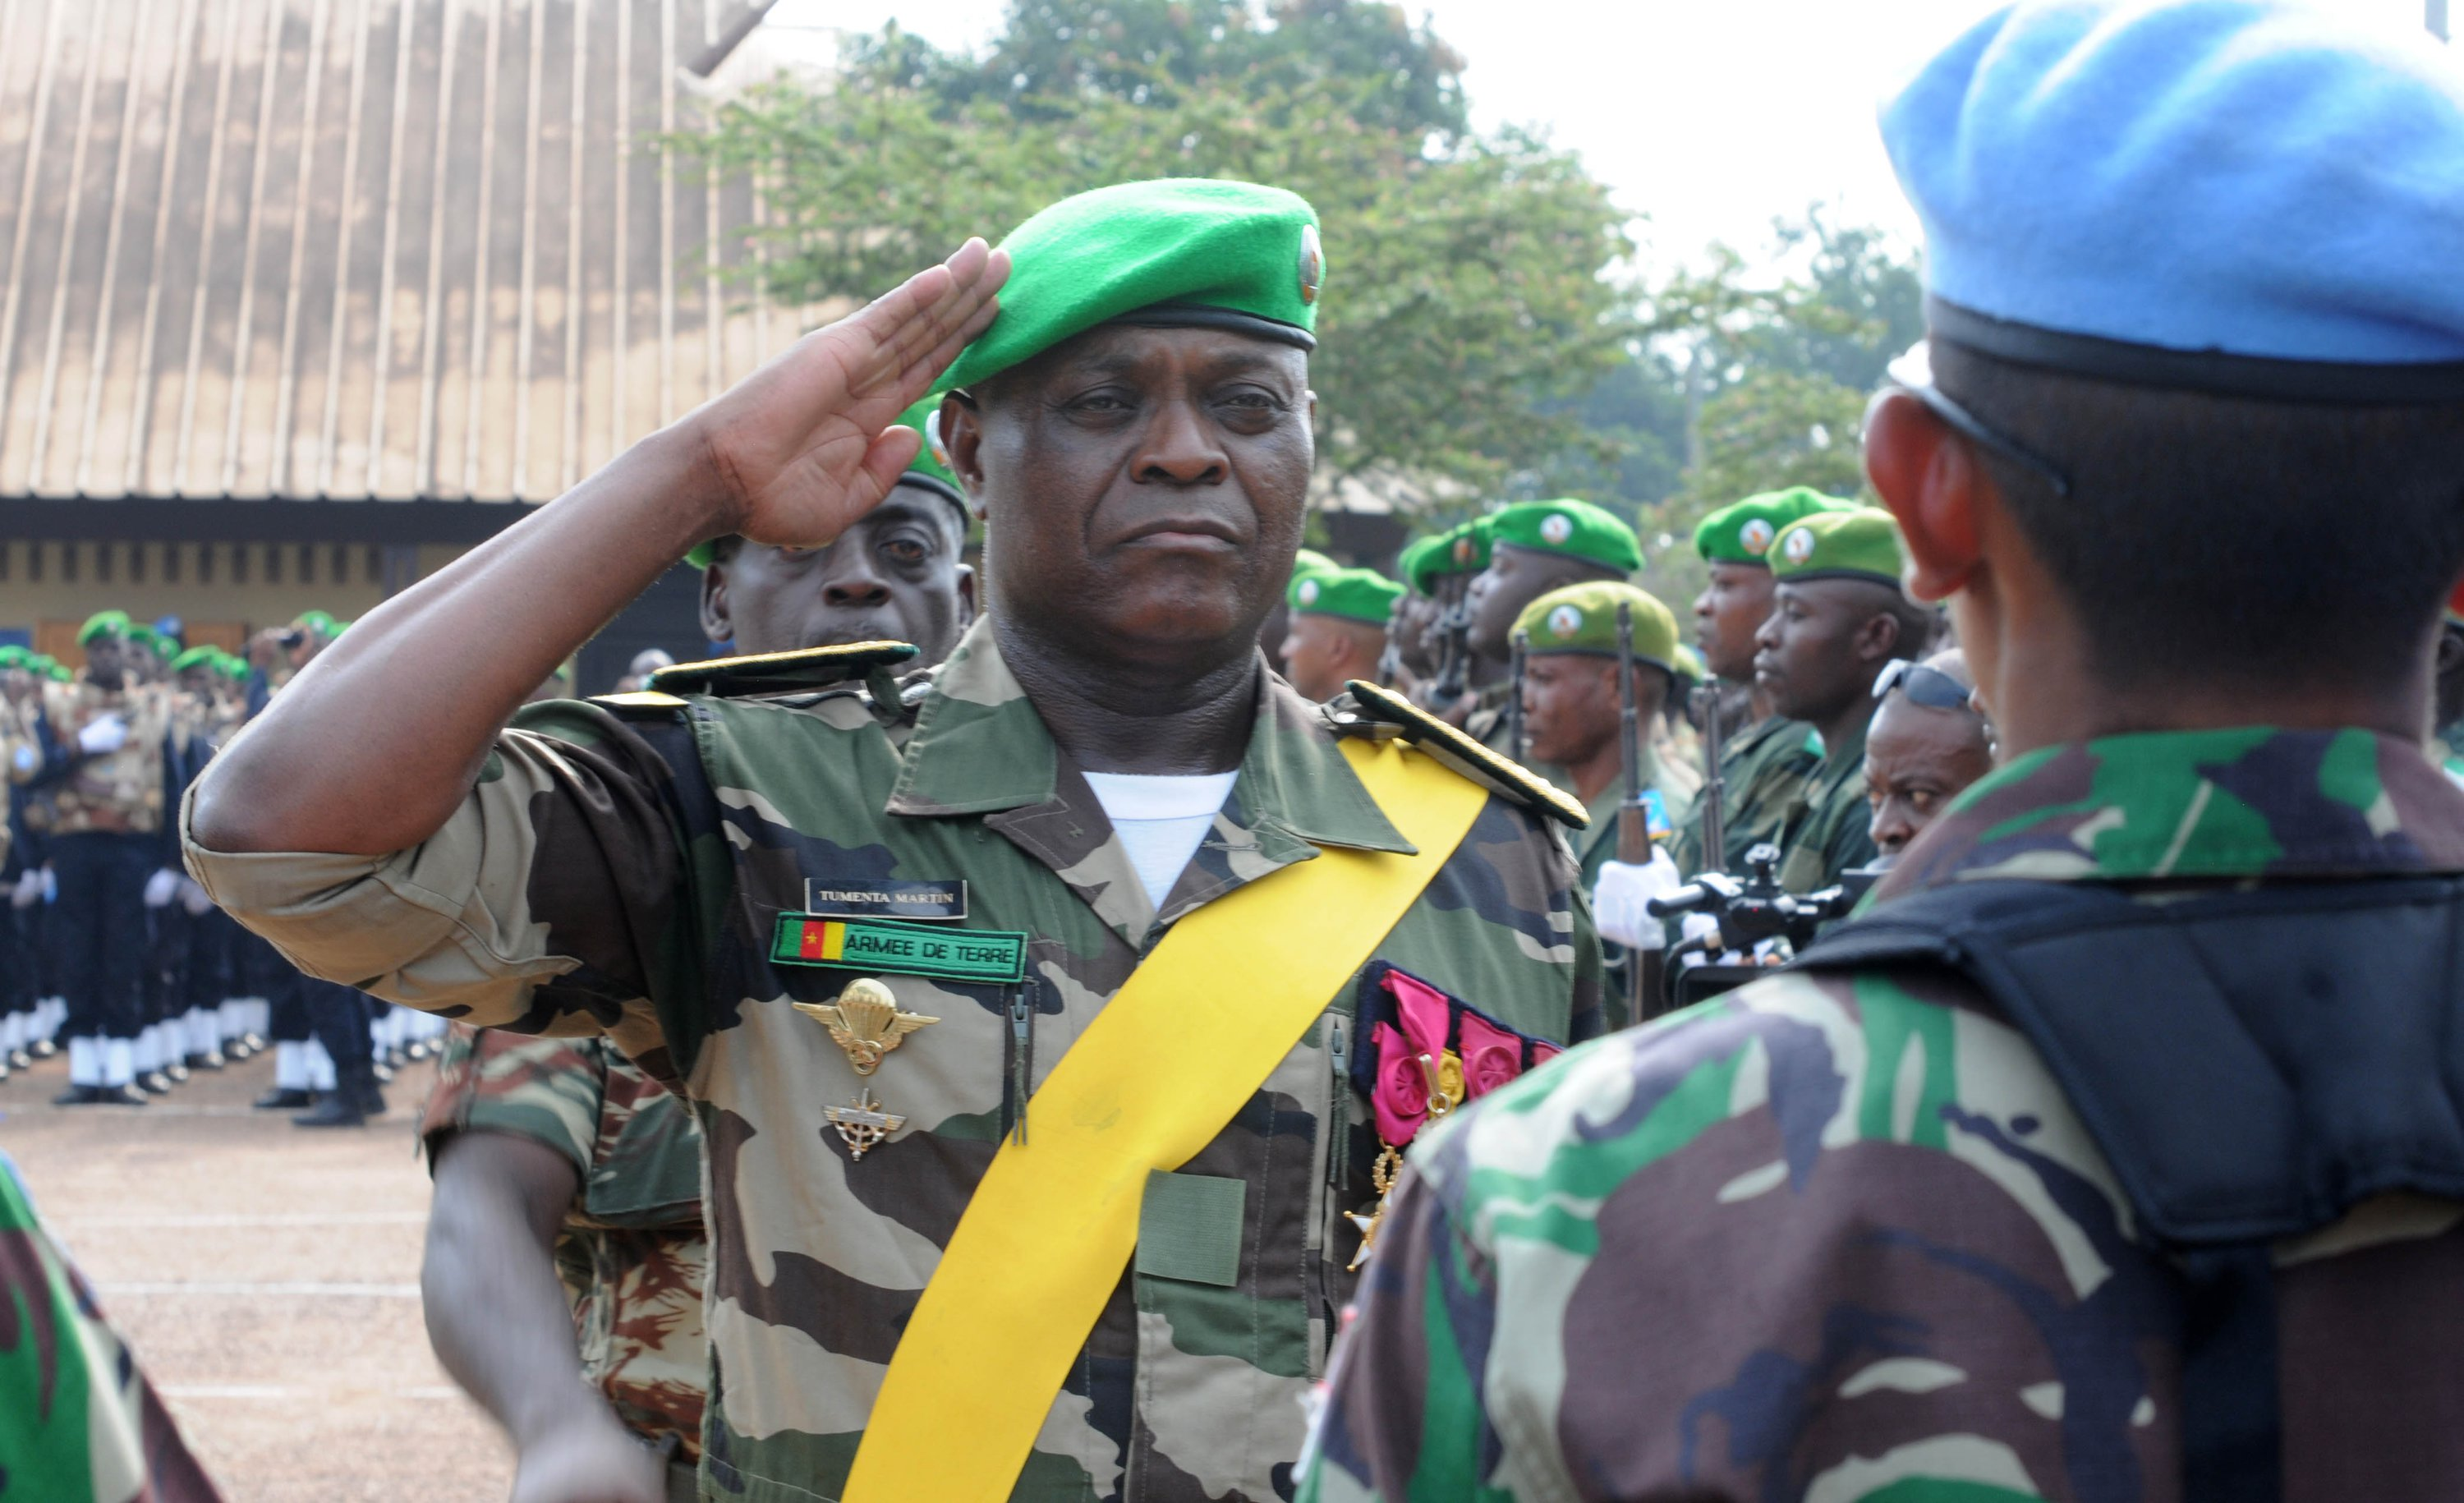 """BANGUI, CENTRAL AFRICAN REPUBLIC - Cameroonian General Martin Tumenta at the Sept. 14, 2014 """"re-hat"""" ceremony where he trades his African Union beret for the blue of the United Nations, which took over the peacekeeping mission. MICHELLE SHEPHARD / TORONTO STAR MICHELLE SHEPHARD/Toronto Star"""